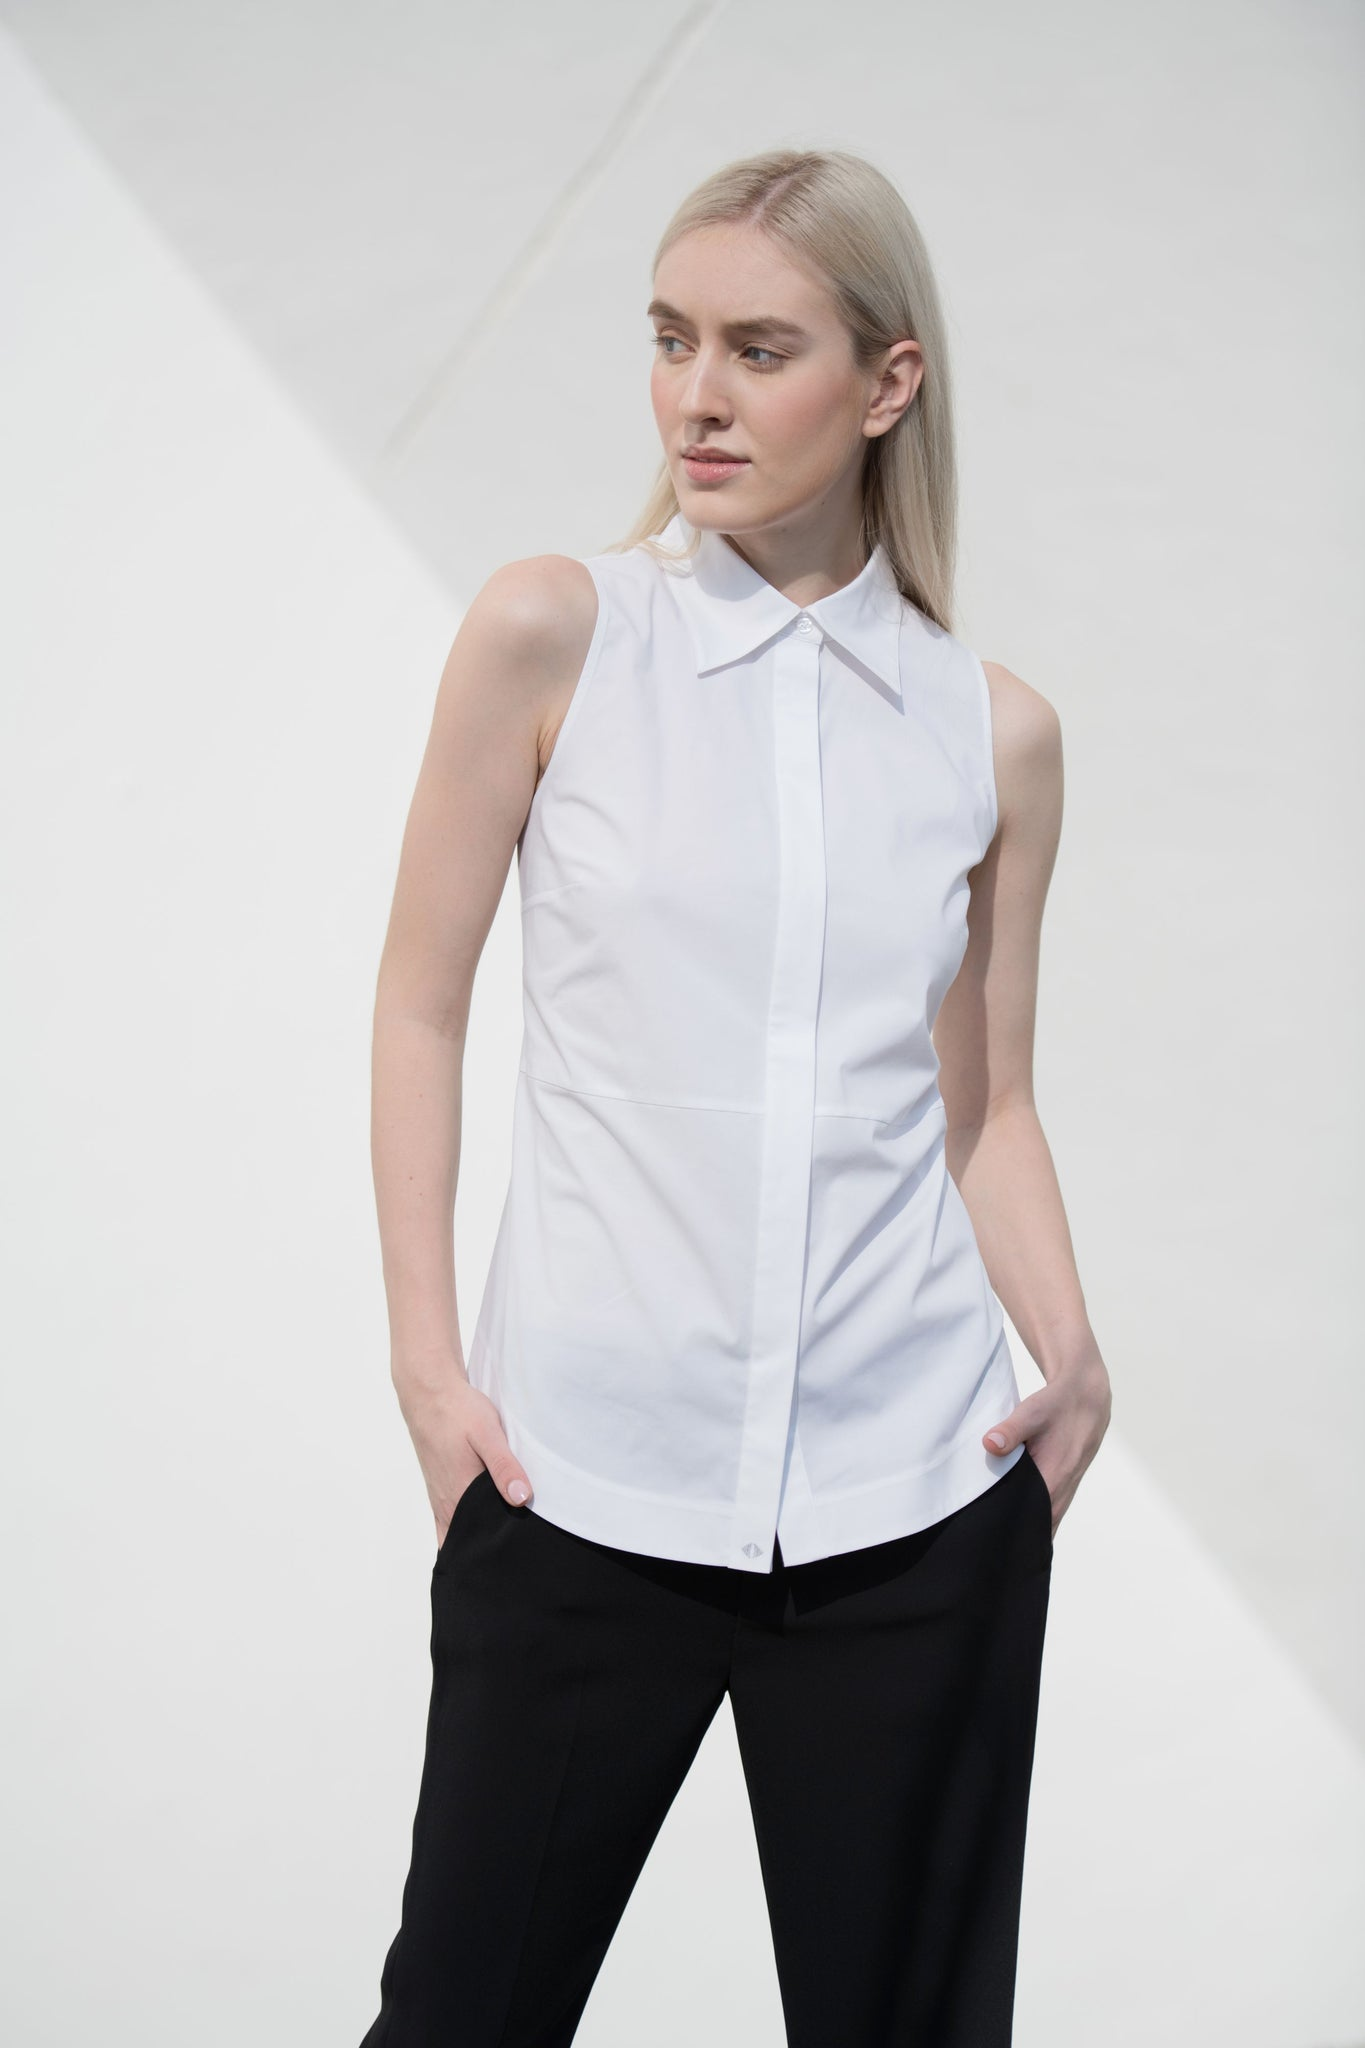 Hudson Sleeveless Button Down women's white blouse - Less than none Greater than